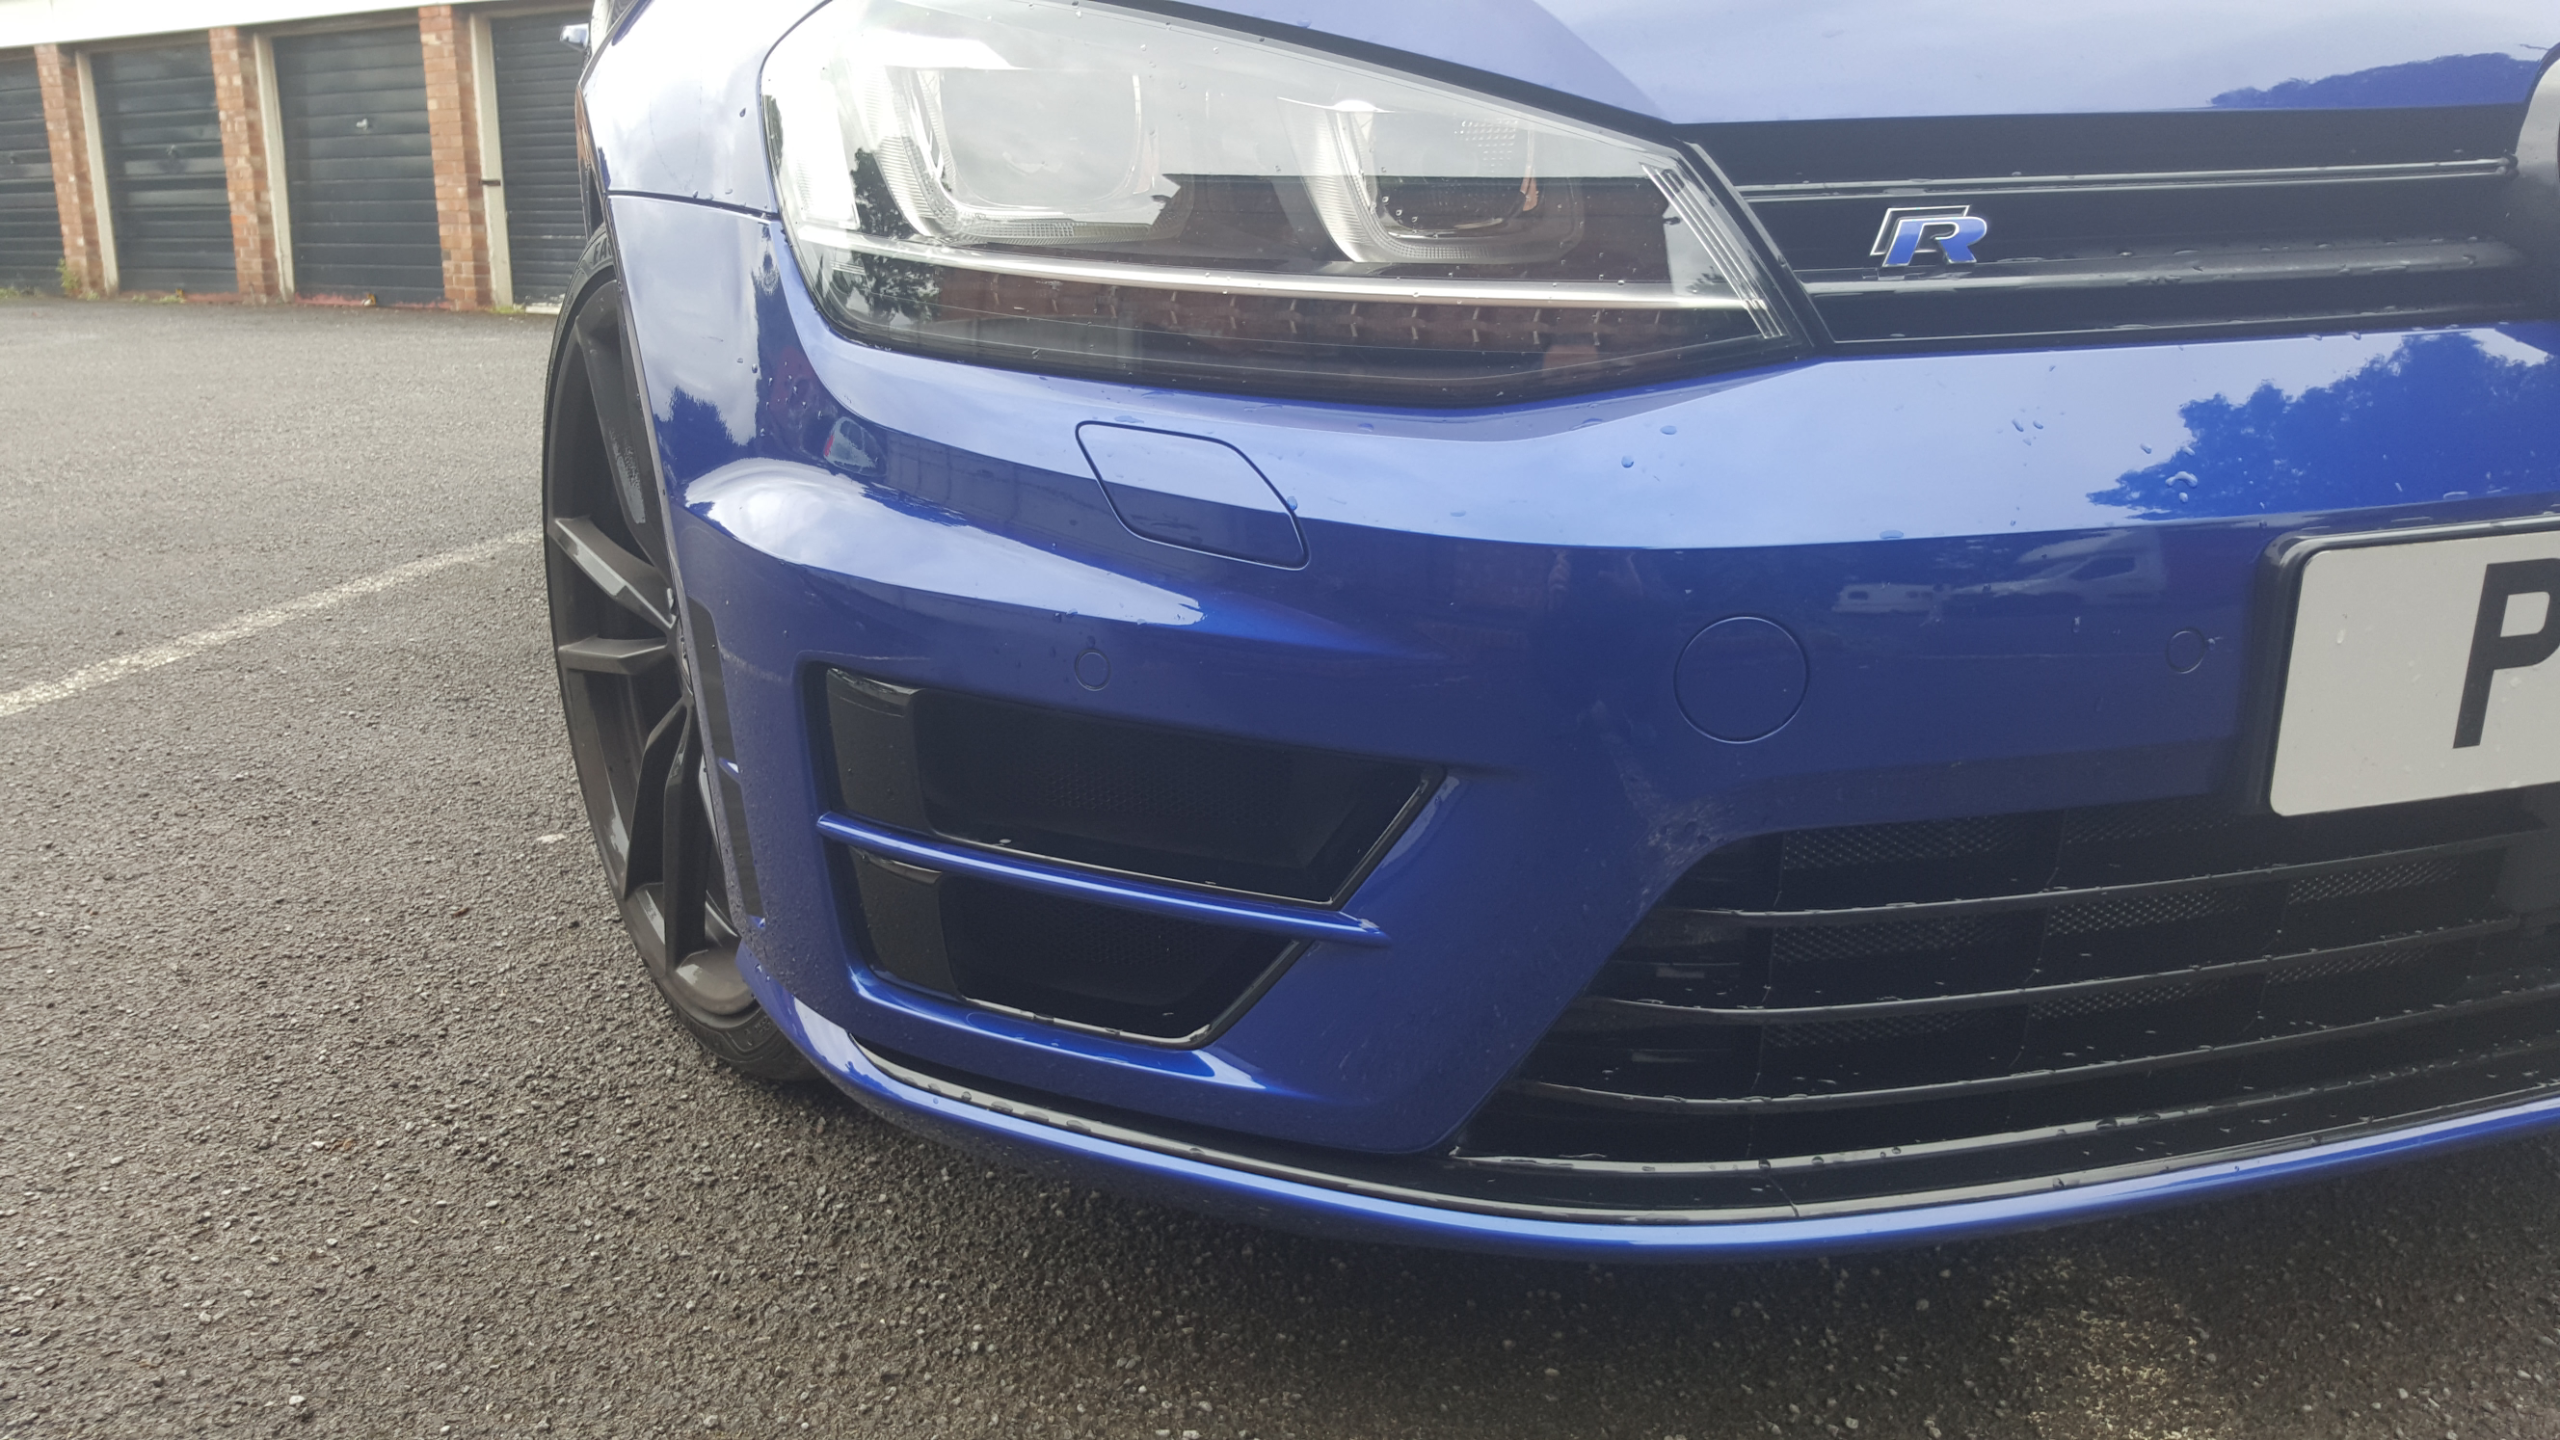 MK7 5 How to remove front grill and bumper???